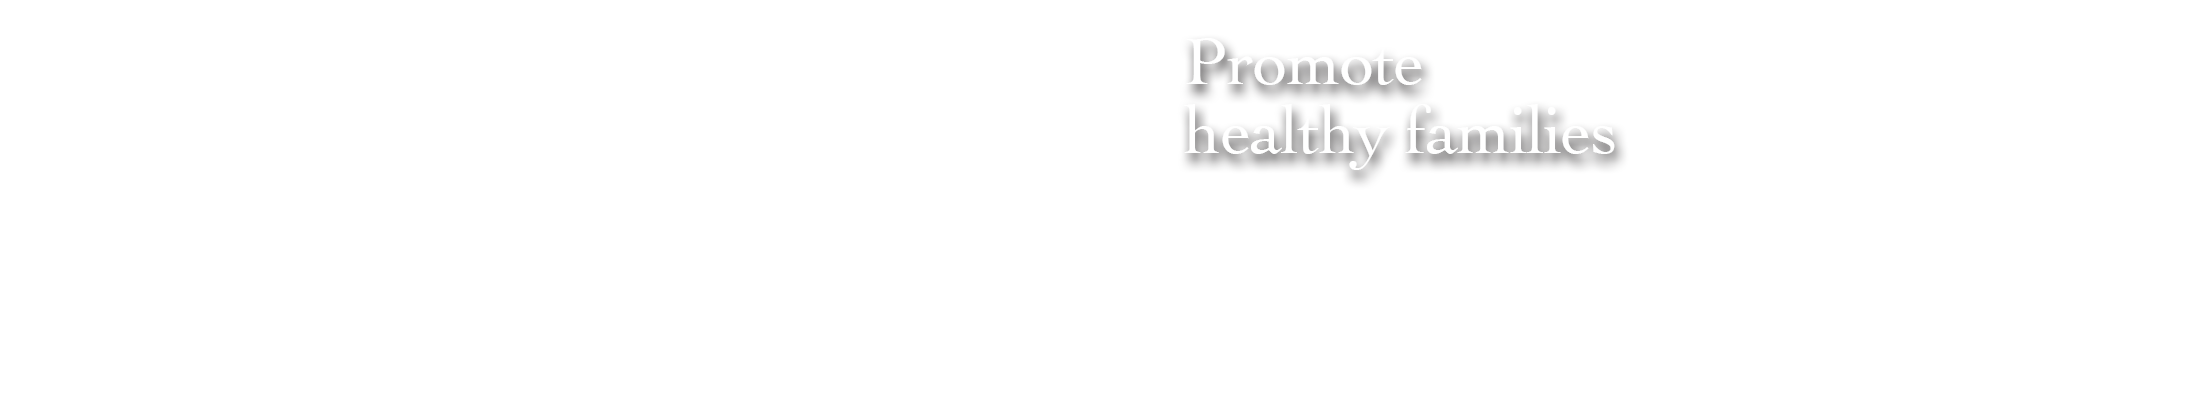 Promote healthy families